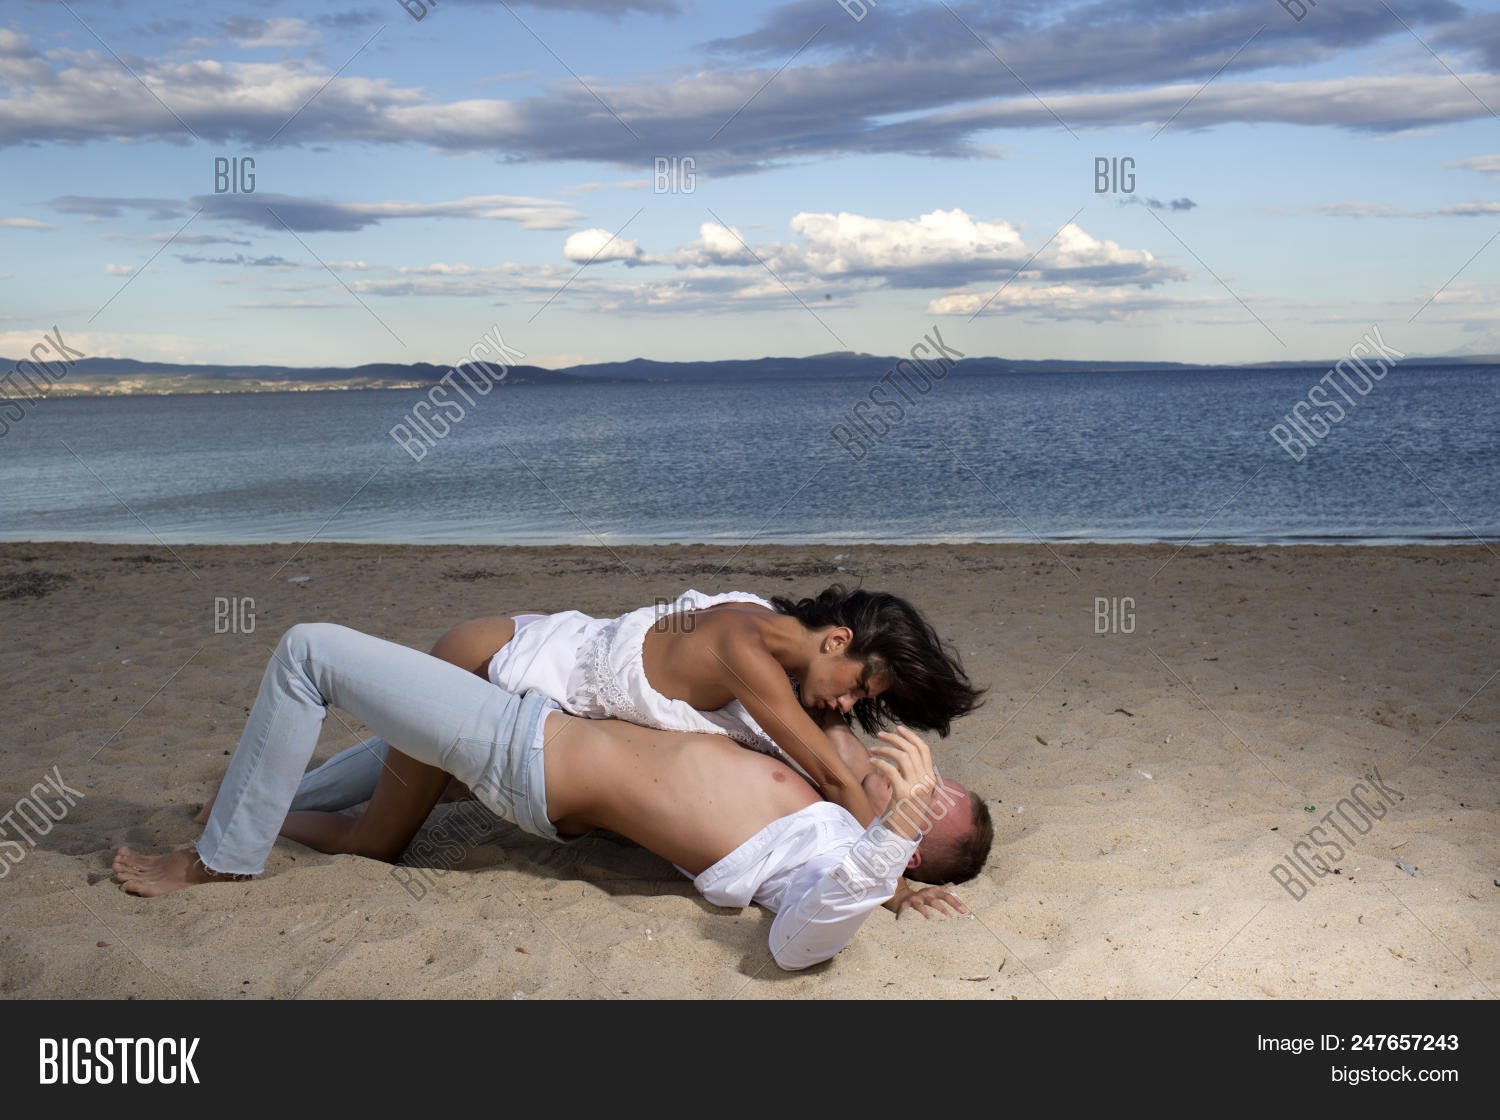 Sex On Beach Concept Couple In Love Have Sex Makes Love On Sand Beach